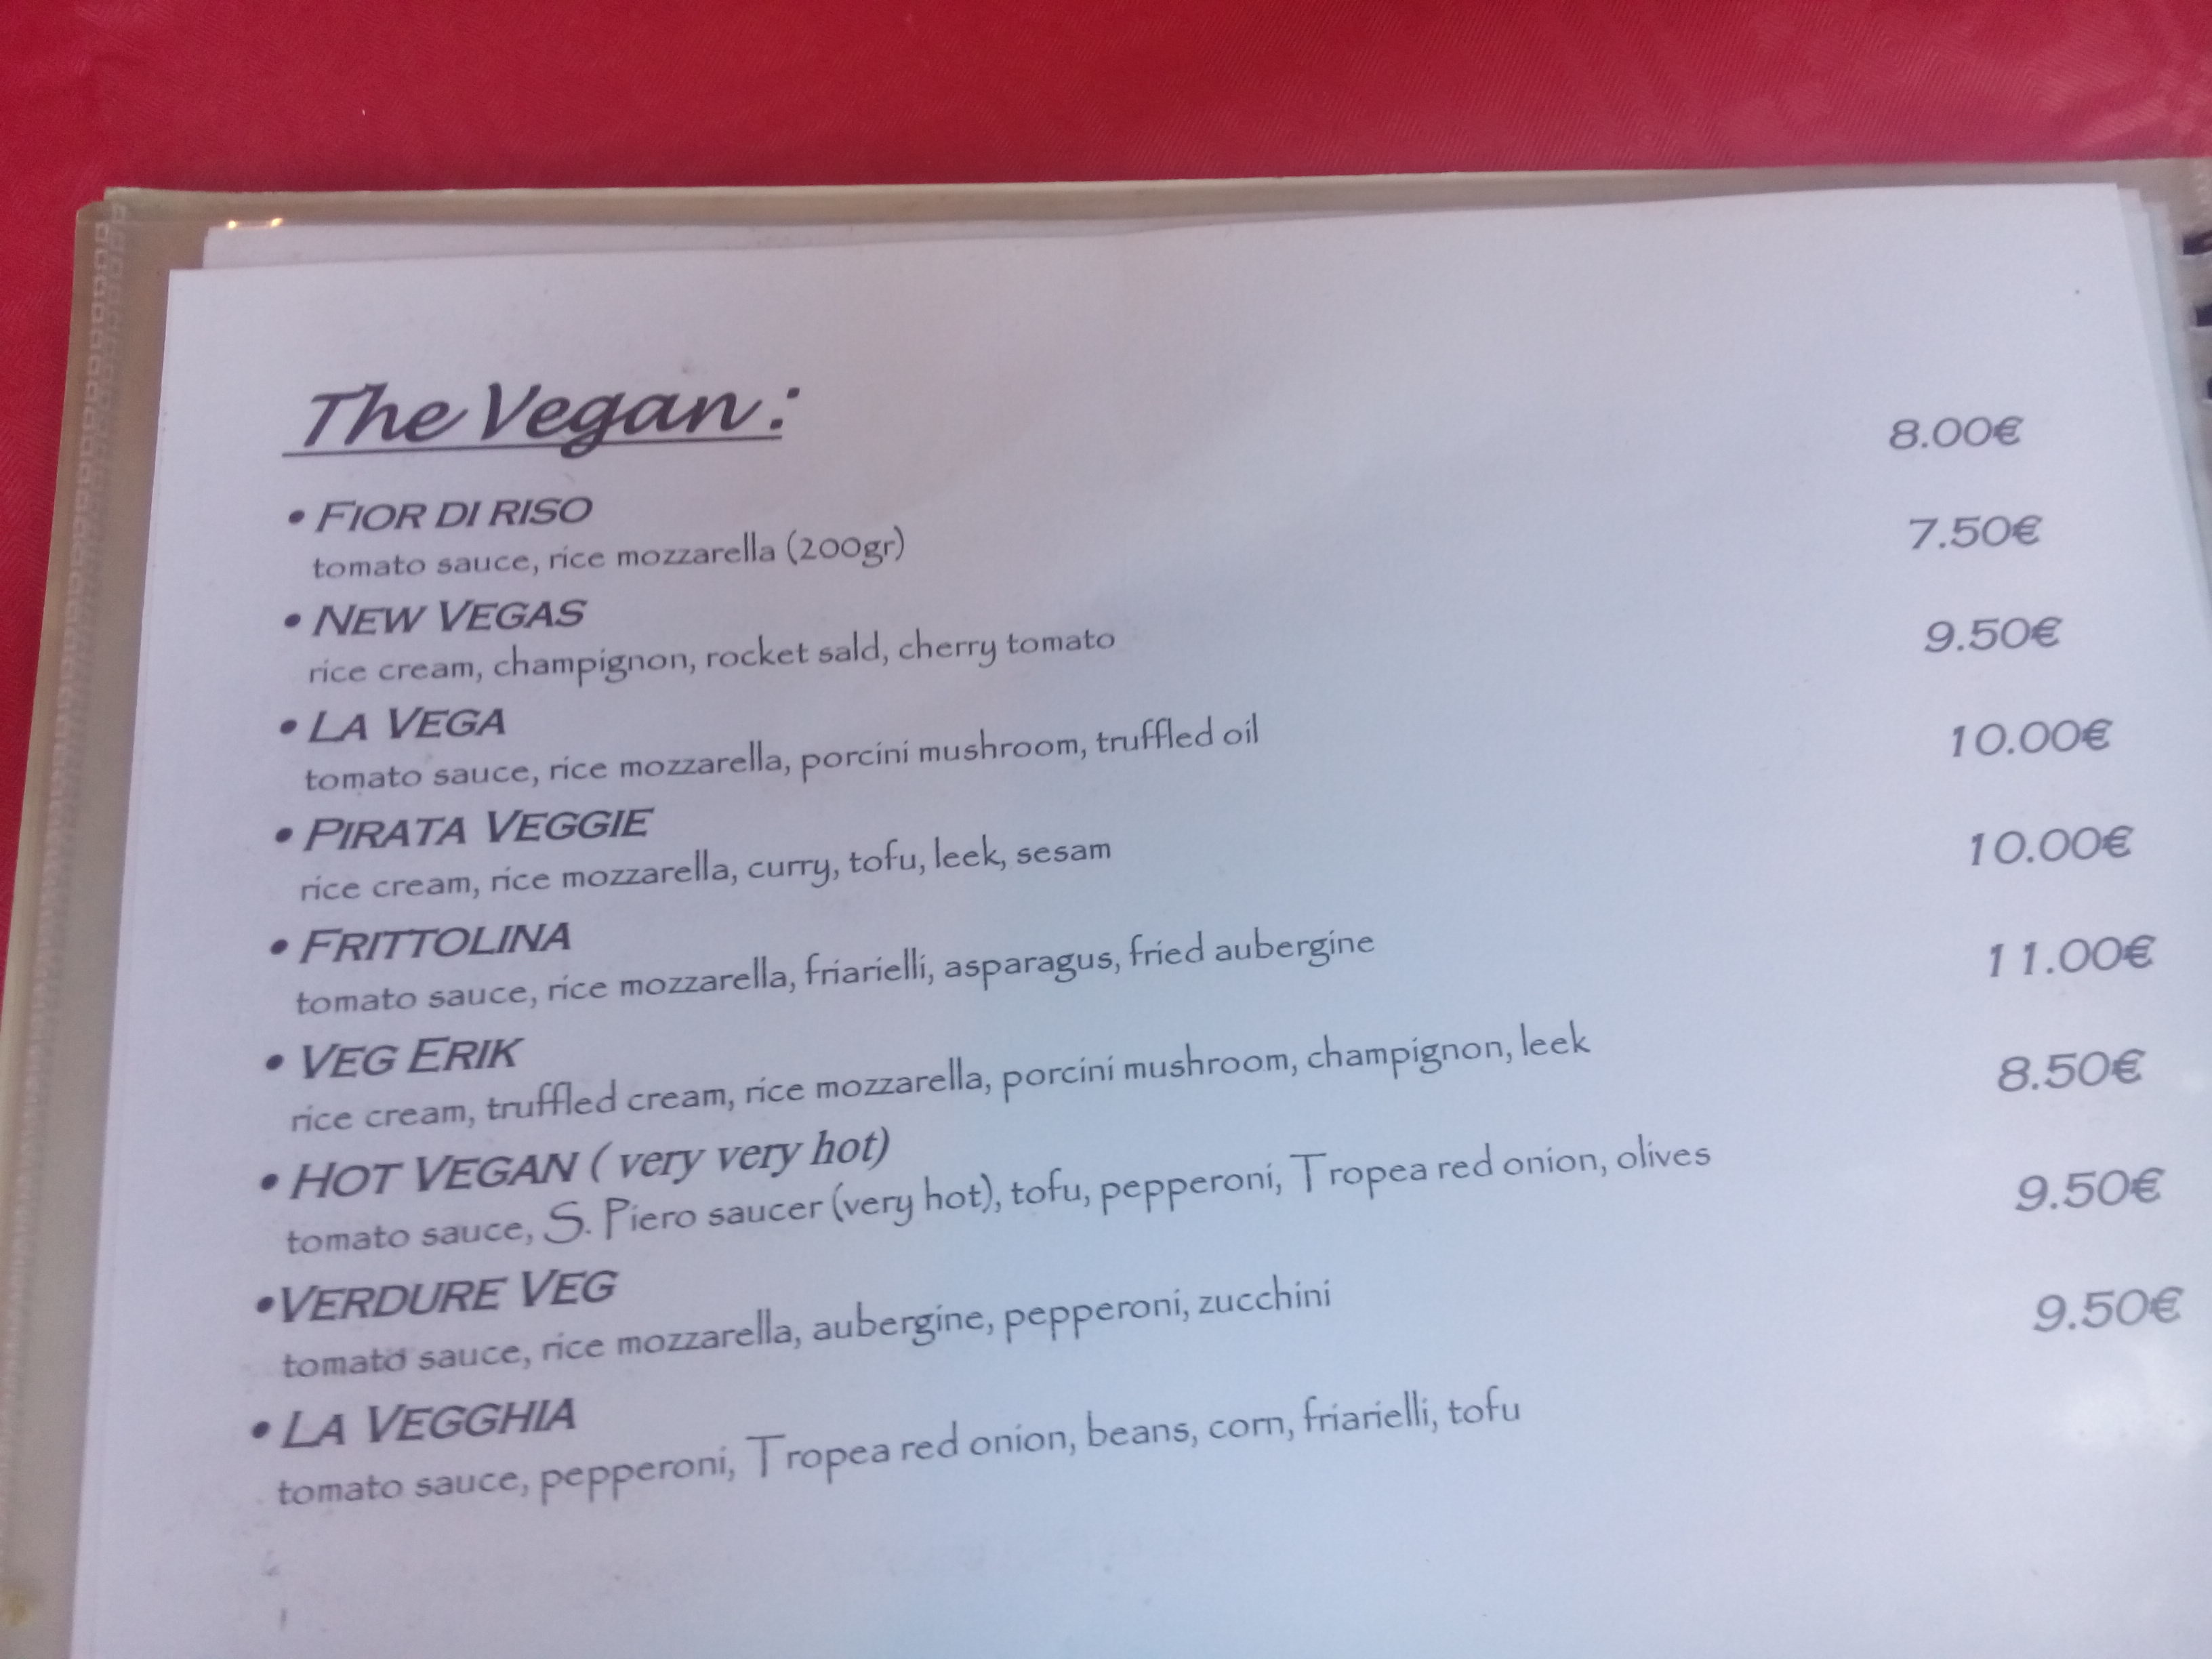 A menu with vegan pizzas listed